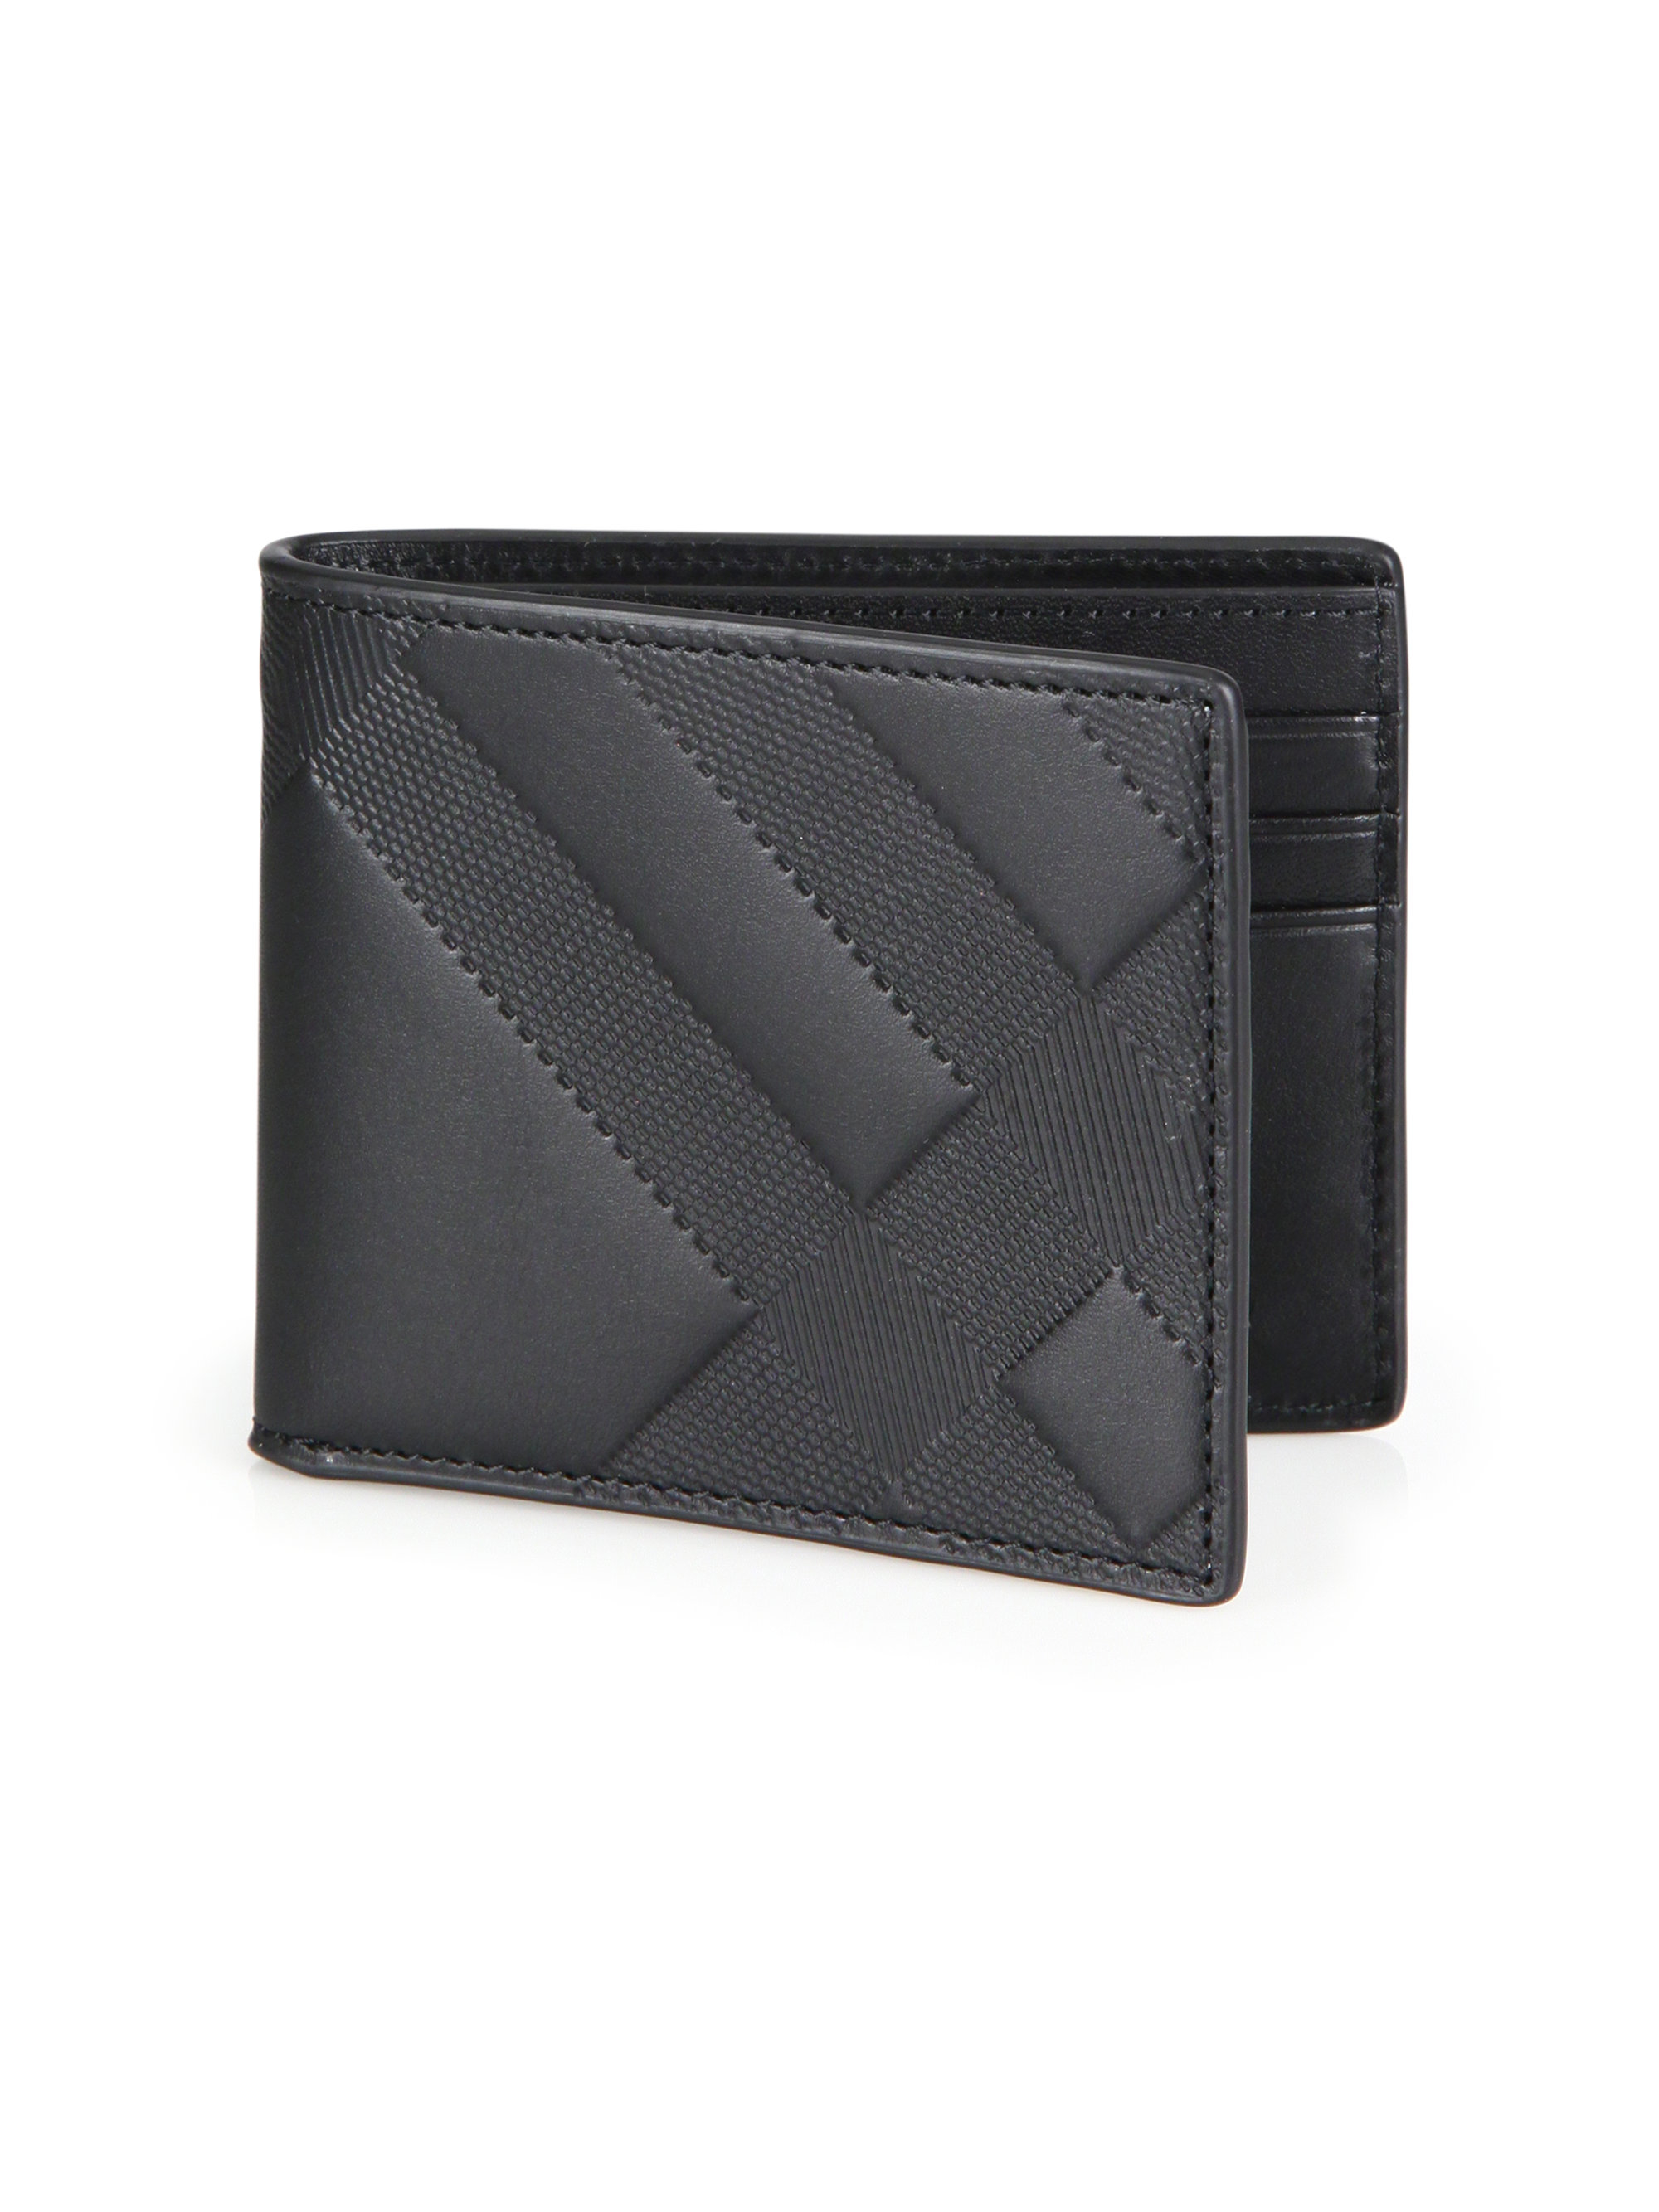 Burberry Embossed Leather Bifold Wallet Outlet Ebay Clearance Get Authentic Cheap Sale Outlet Locations 0ZGZVKhg